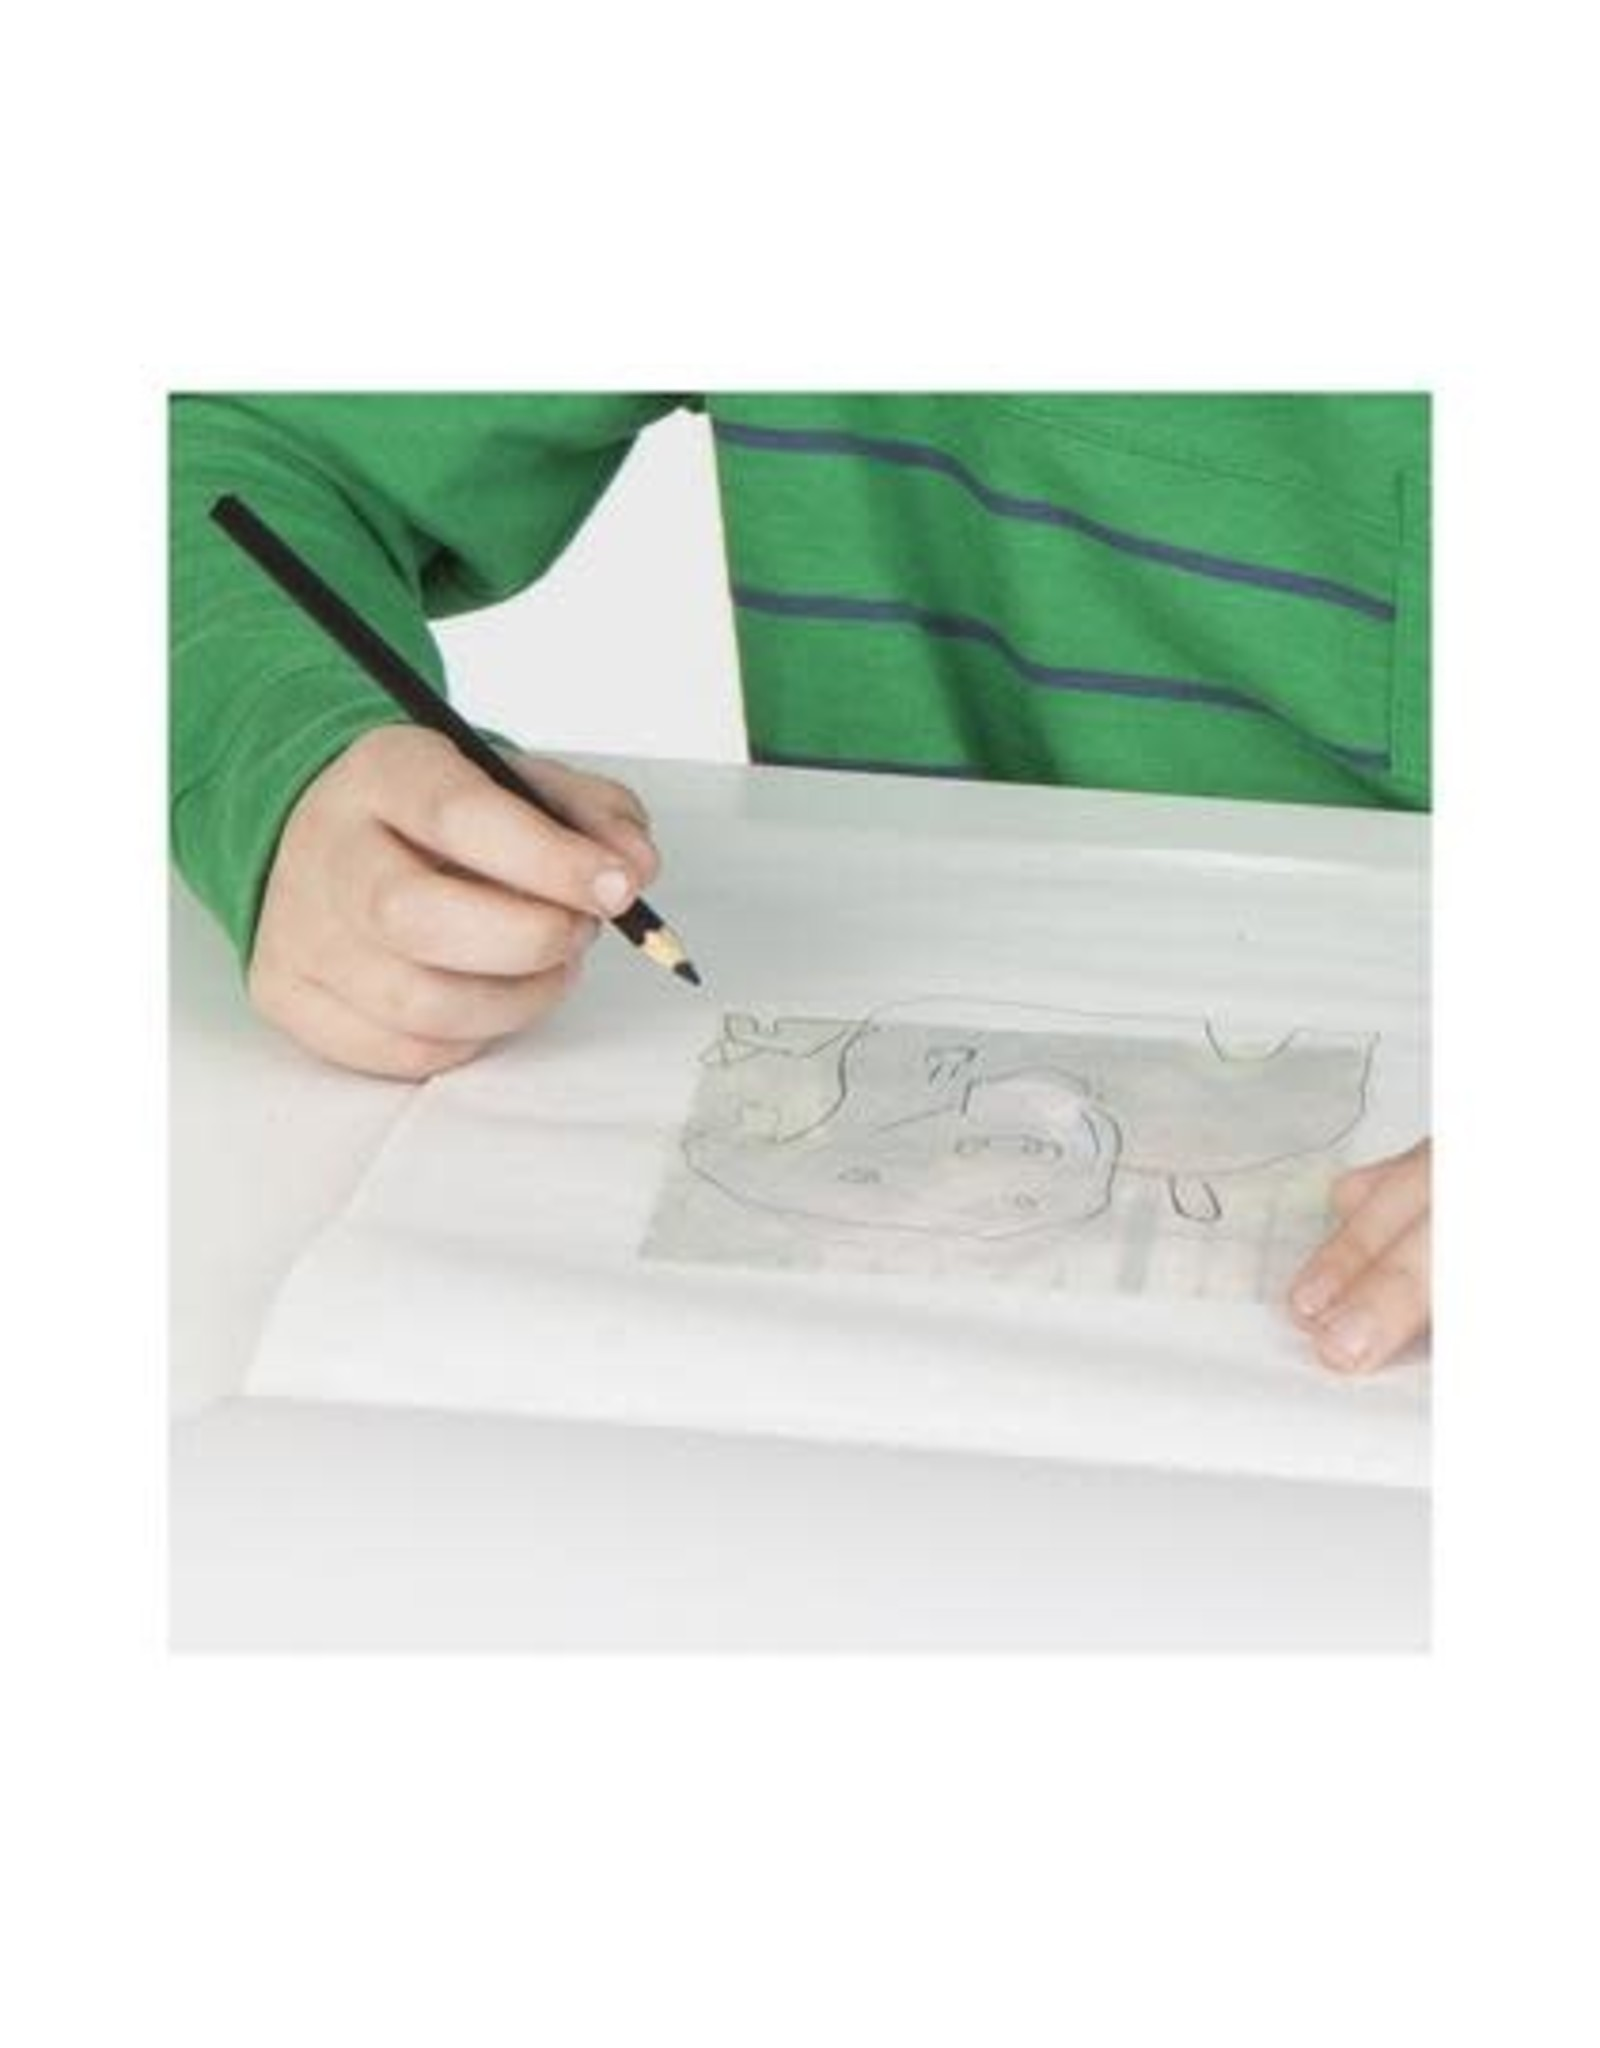 Faber-Castell Art Supply Tracing Paper Pad 9 x 12